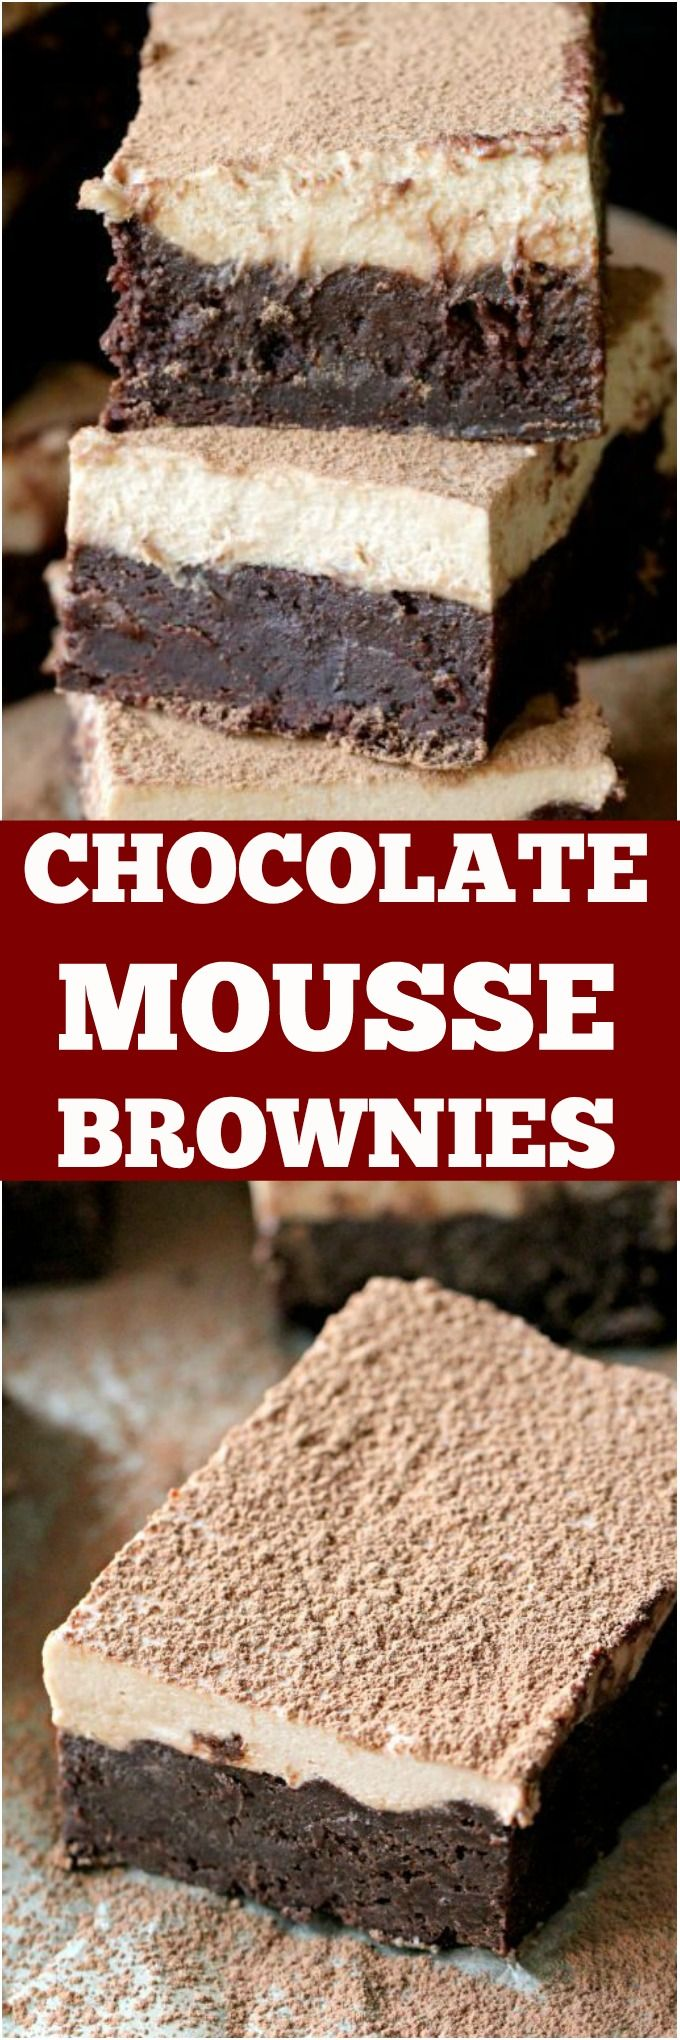 Creamy, indulgent and rich, these chocolate mousse brownies are addictive and you will want to make them over and over again.